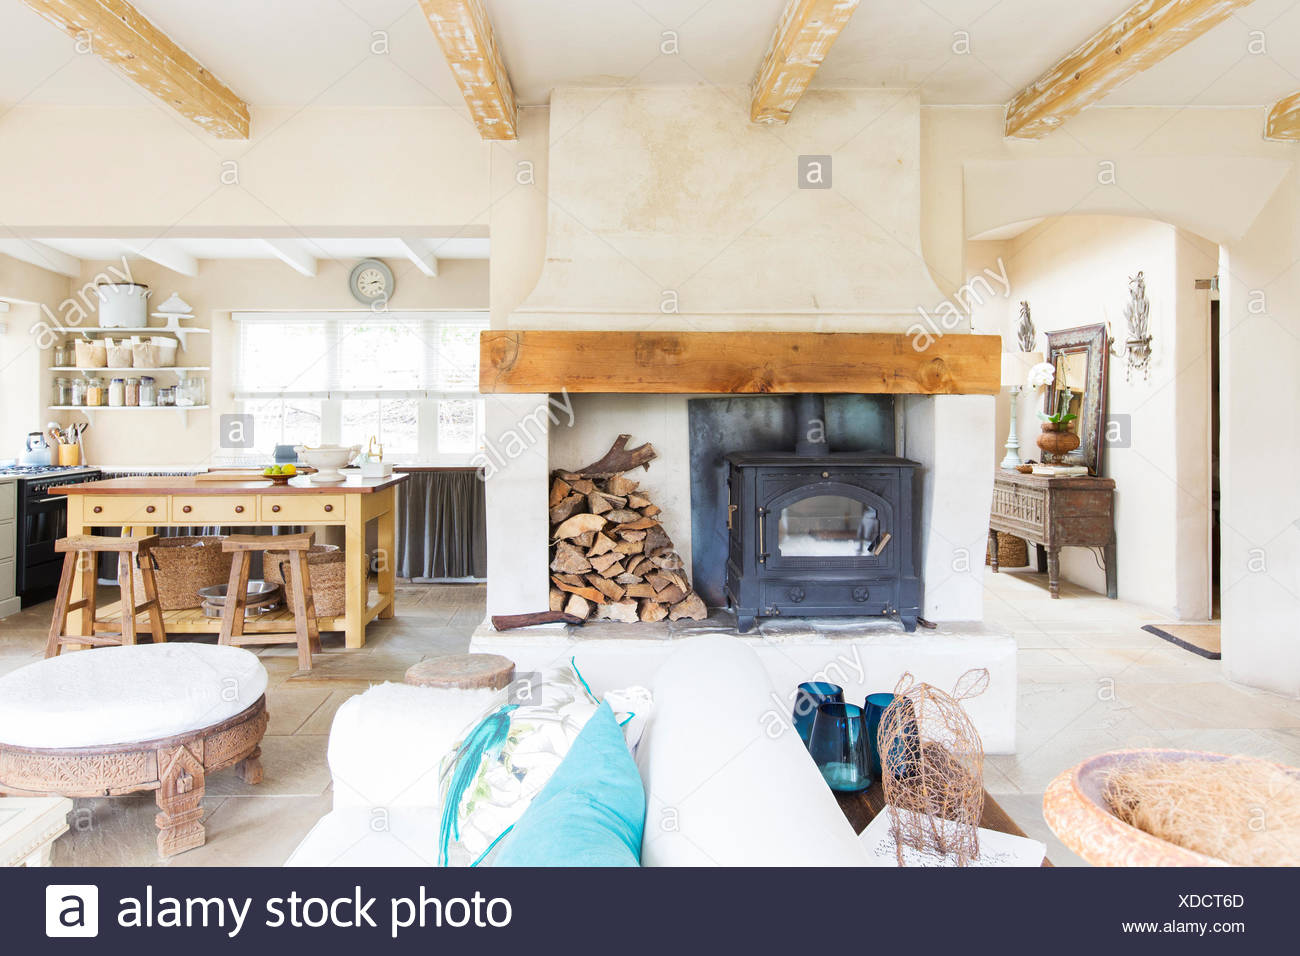 Living room and kitchen of rustic house - Stock Image